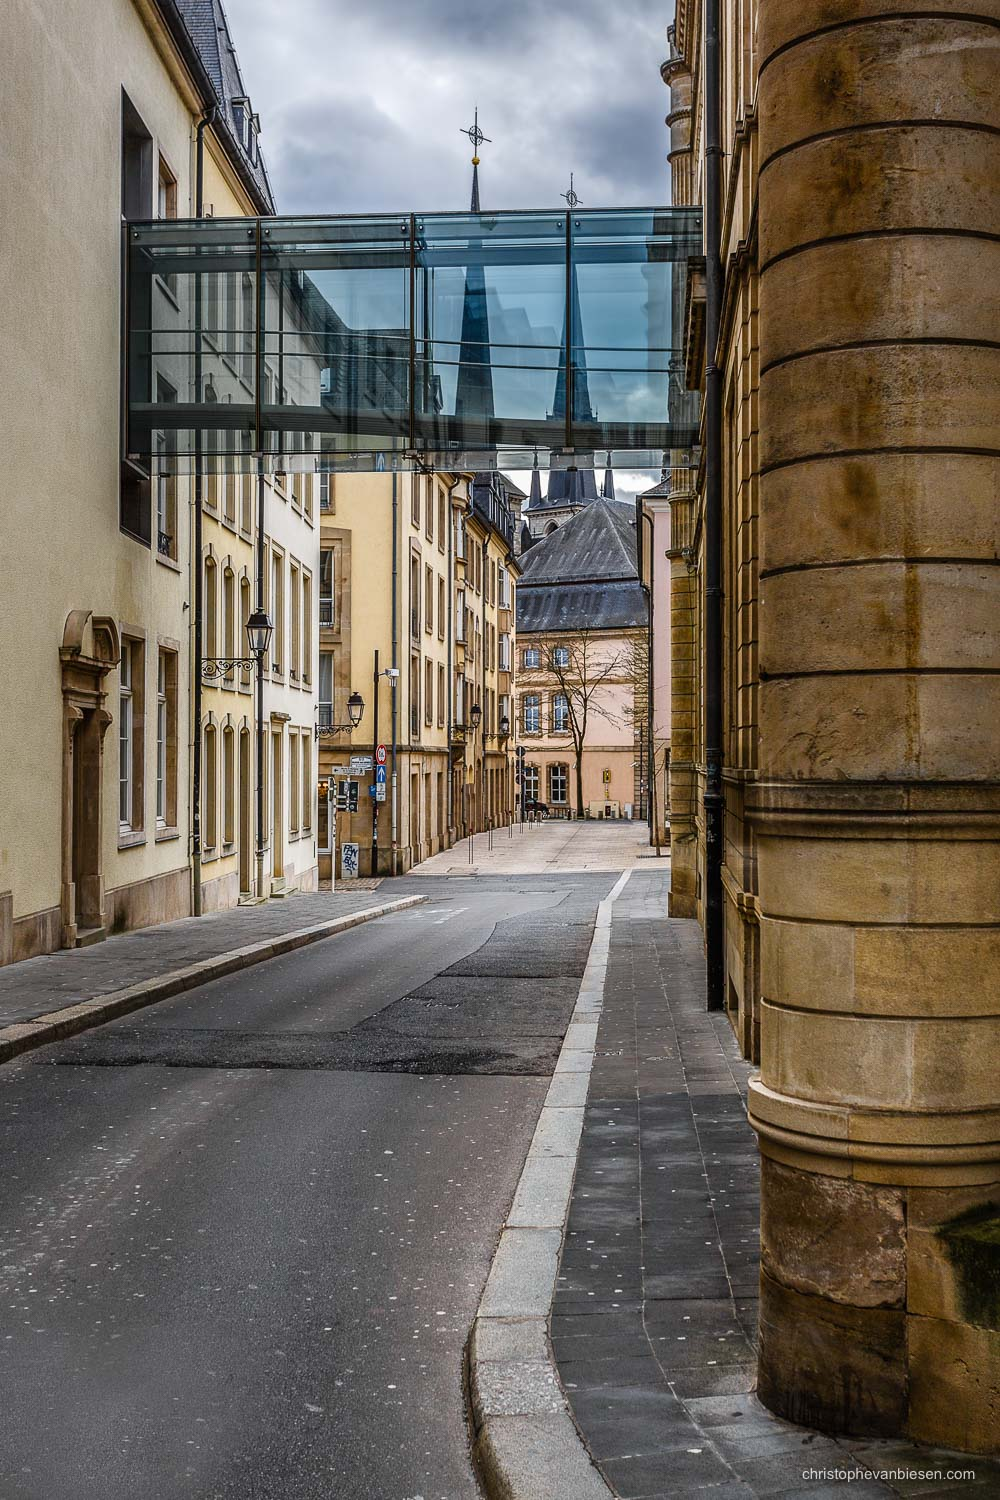 Narrow Streets of Luxembourg City - Rue de l'eau with its glass bridge of the Parliament and the towers of the Notre-Dame cathedral in the background - The Narrows I